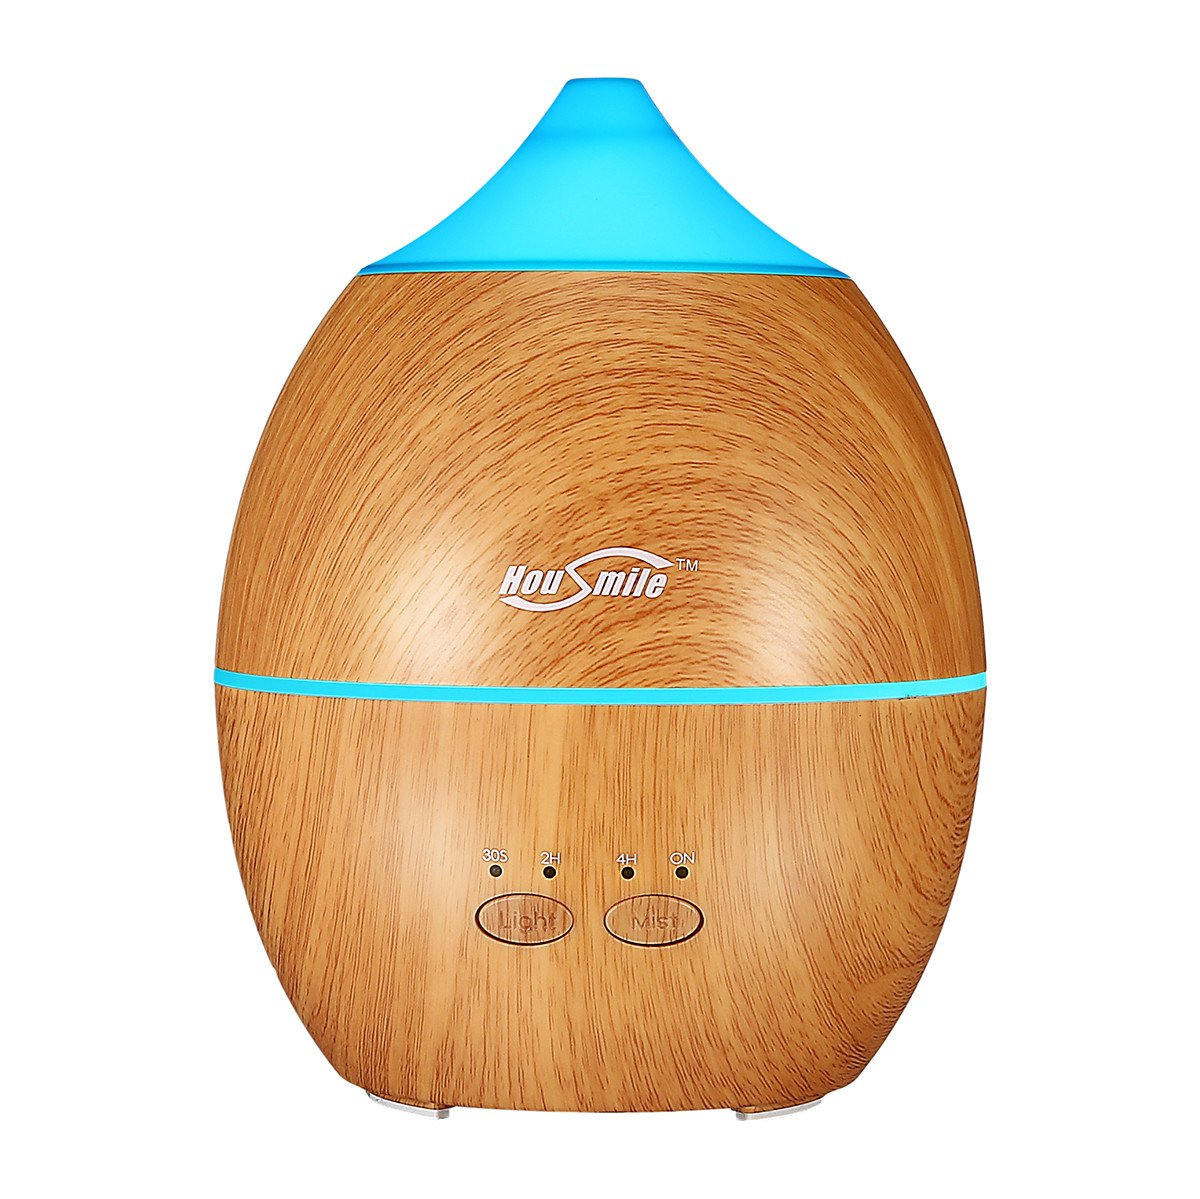 Housmile 300ml Cool Mist Ultrasonic Humidifier,Mini Aroma Essential Oil Diffuser with 7 Color LED lamps and Waterless Auto Shut-off, 4 Timer Settings(Black Brown)